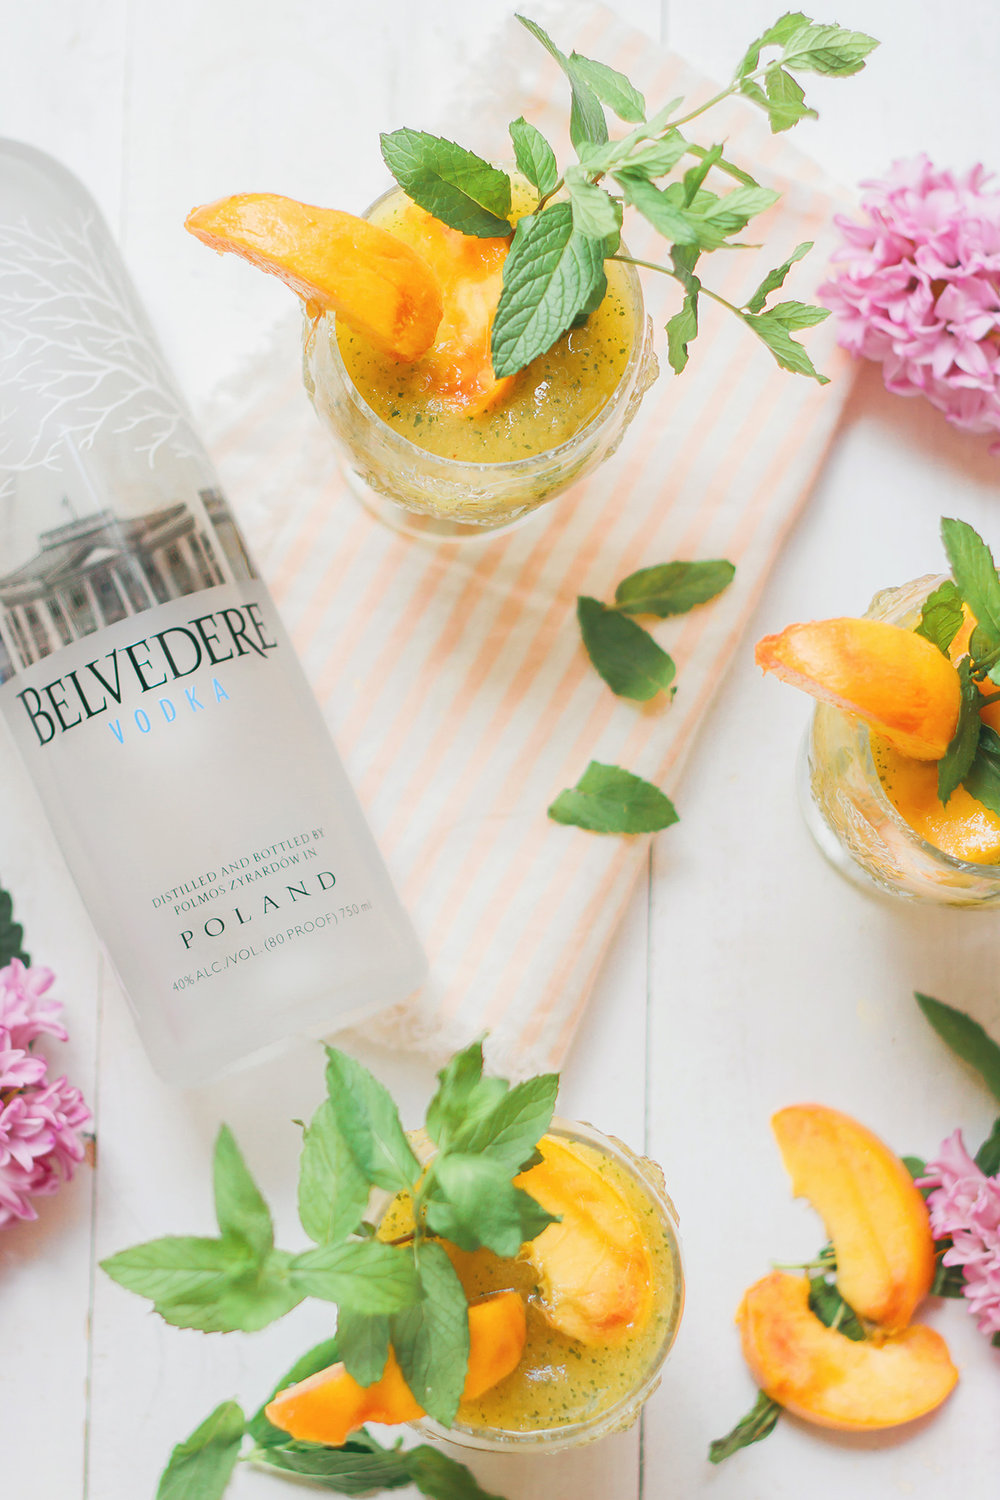 belvedere-peach-cocktails.jpg